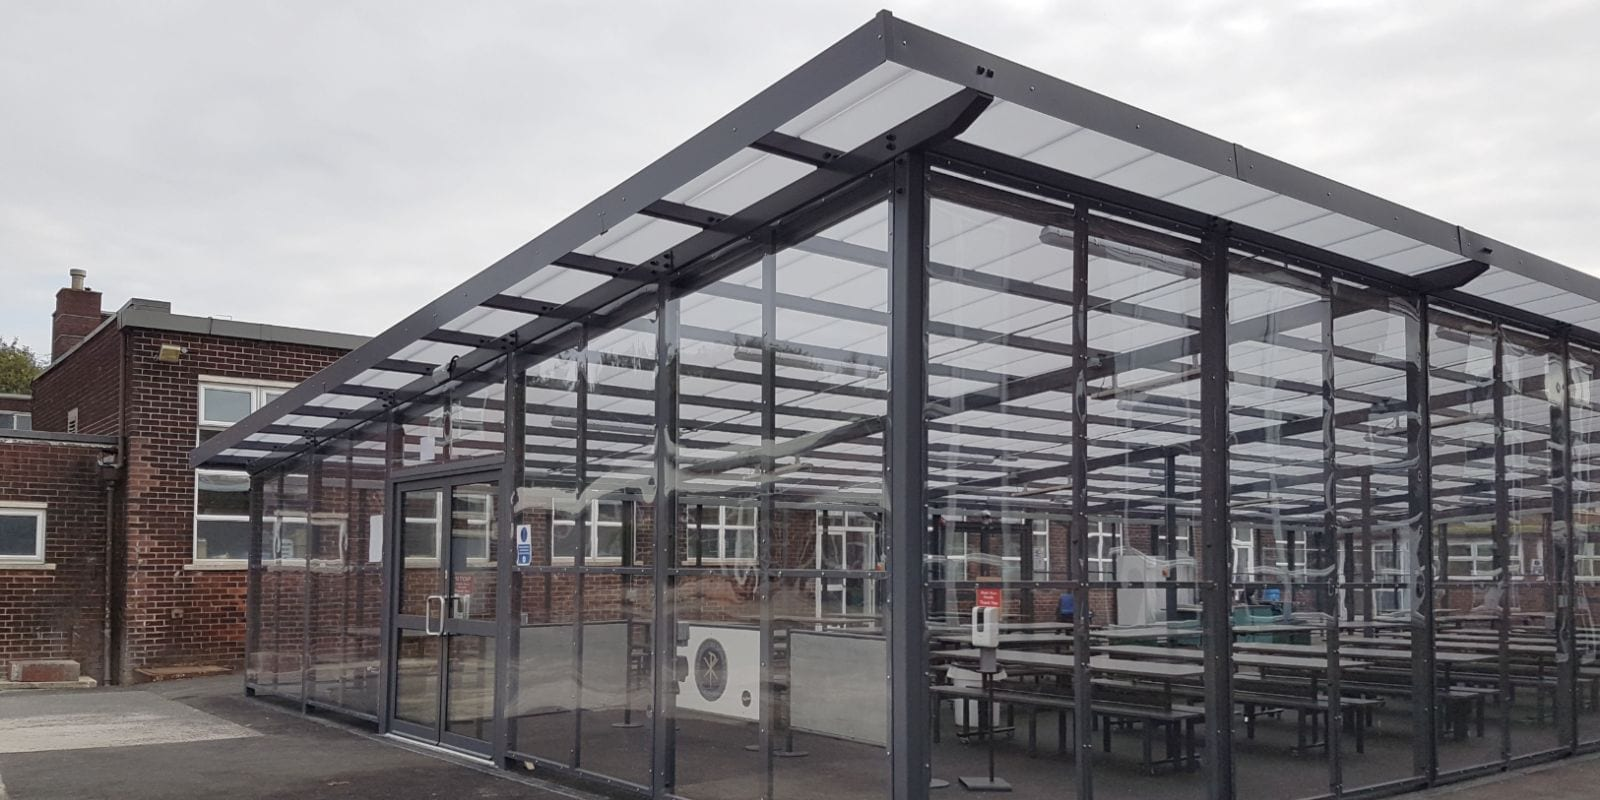 Dining shelter we designed for St Gabriel's RC High School